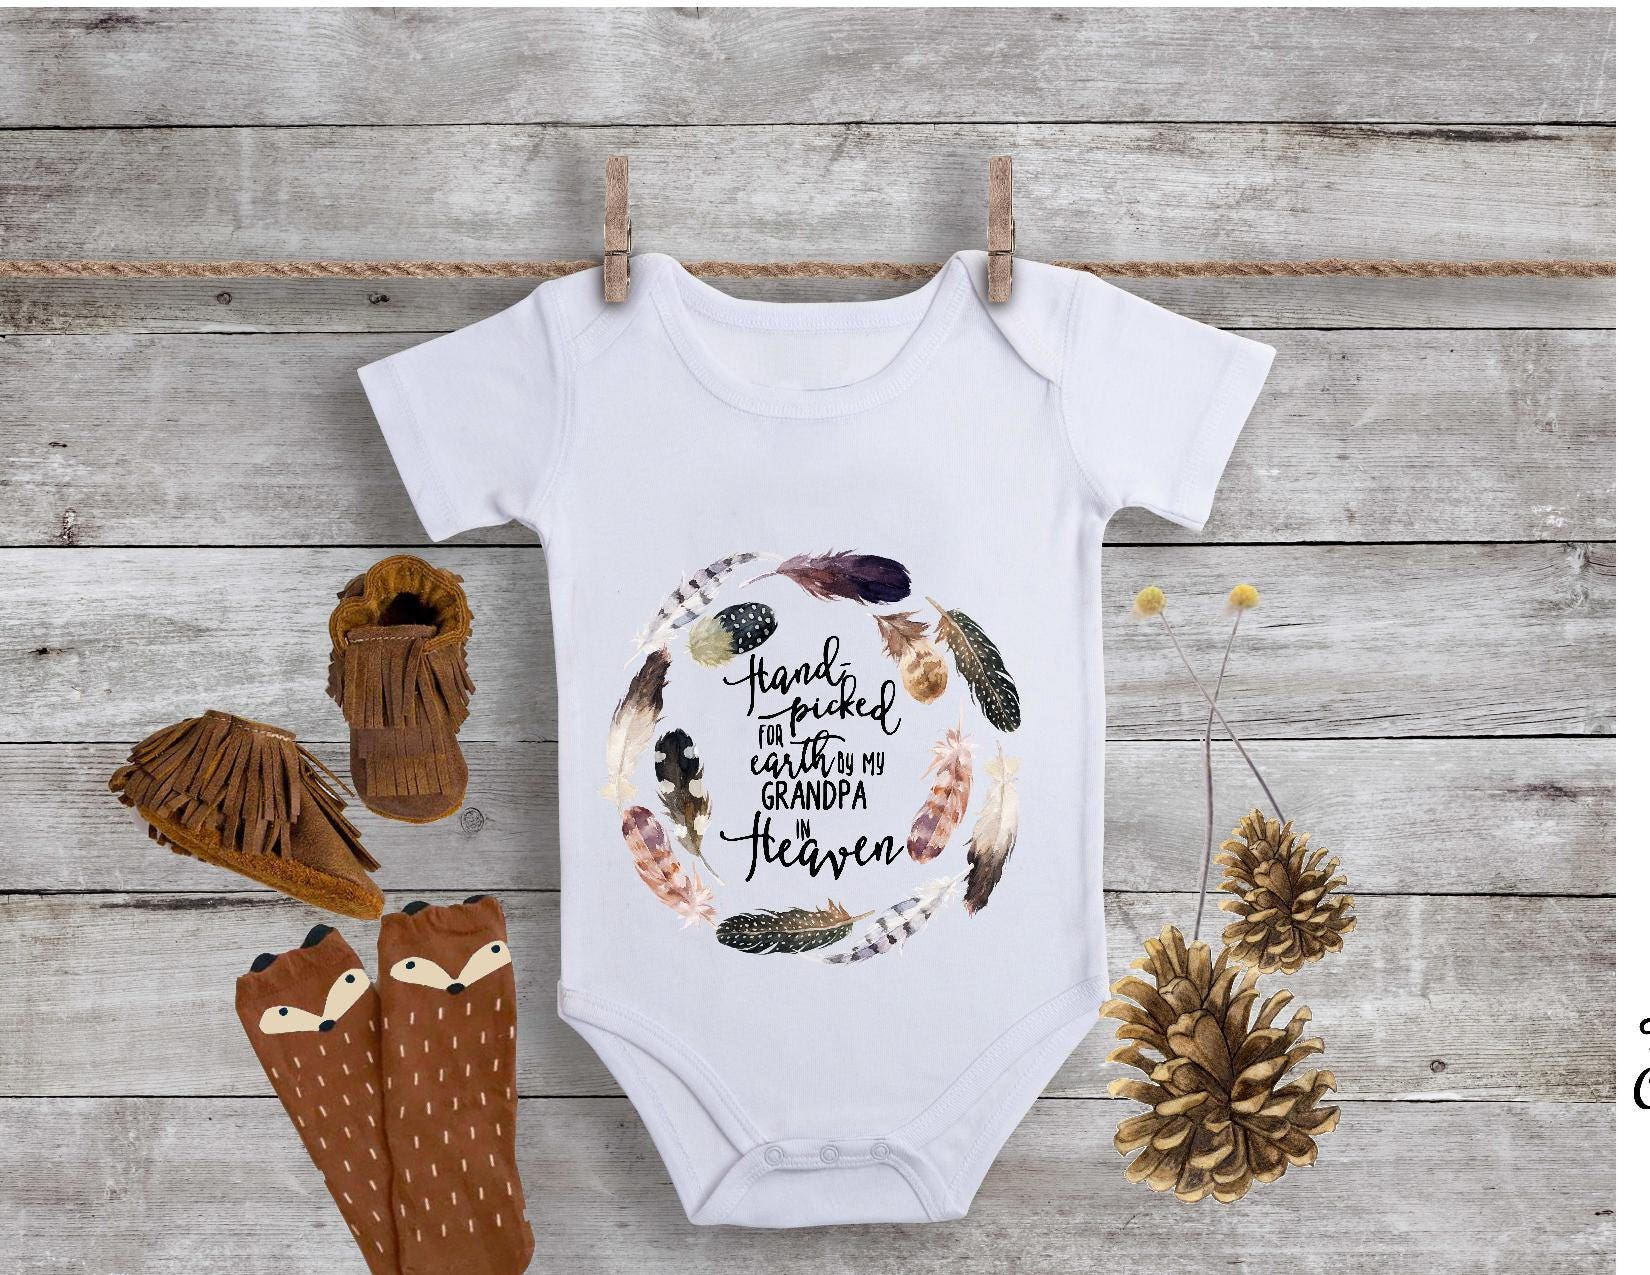 Handpicked in Heaven By my Grandpa esie Boho Baby Clothes